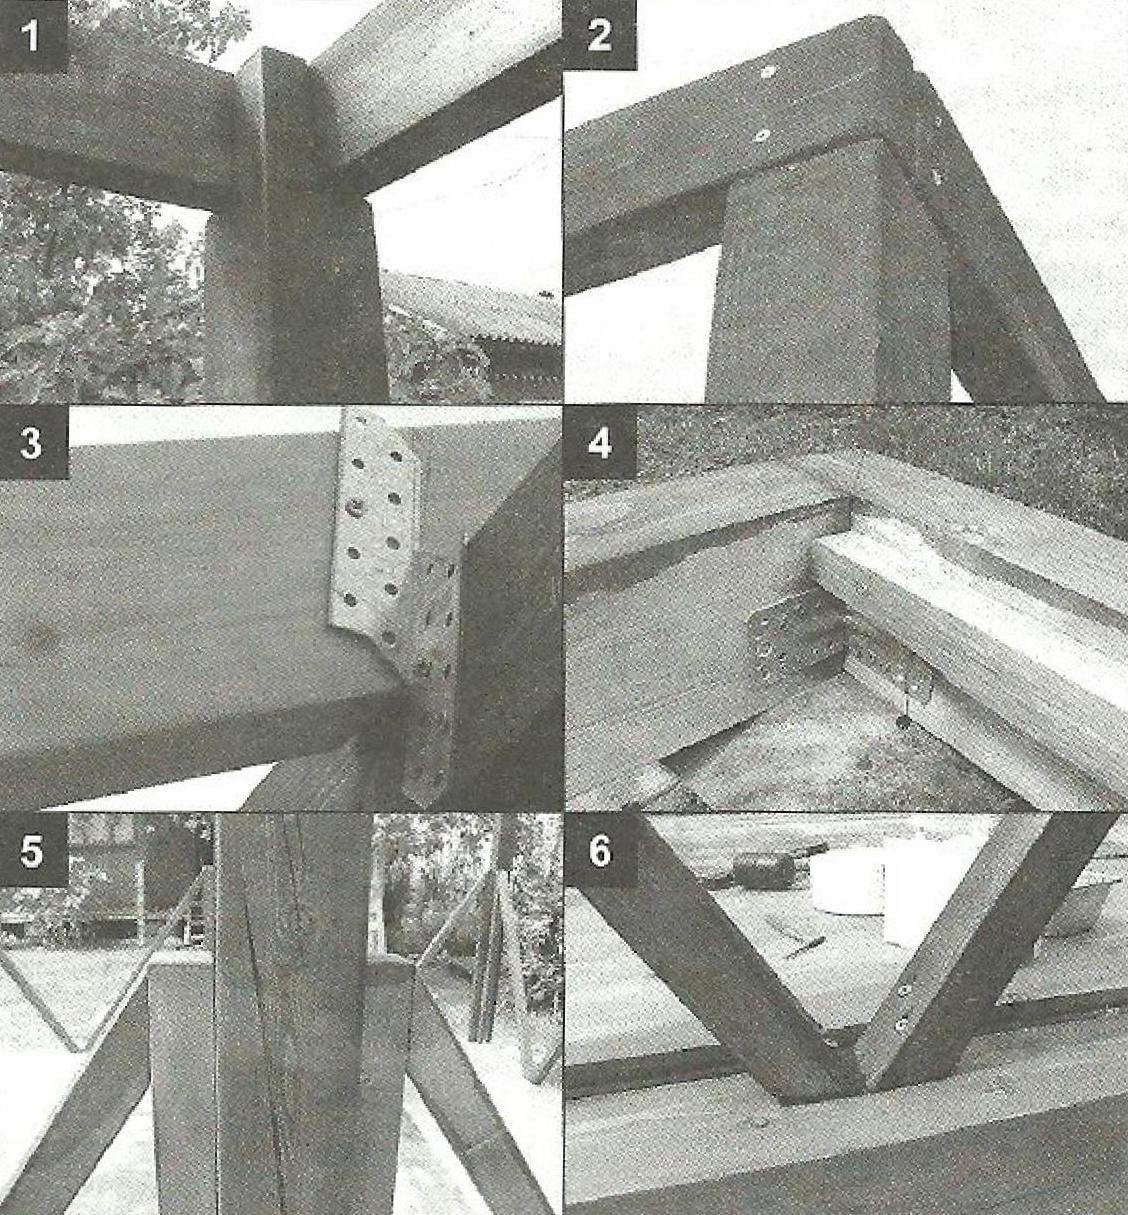 Embedding (1) and compound (2) with screws the boards of the corner uprights and top cord Fastening the rafters to the beams of the upper piping of double corners (3) the Mounting beams of the waist metal corners (4) Mount ocasin with screws to the uprights (5) and bottom rail (6)